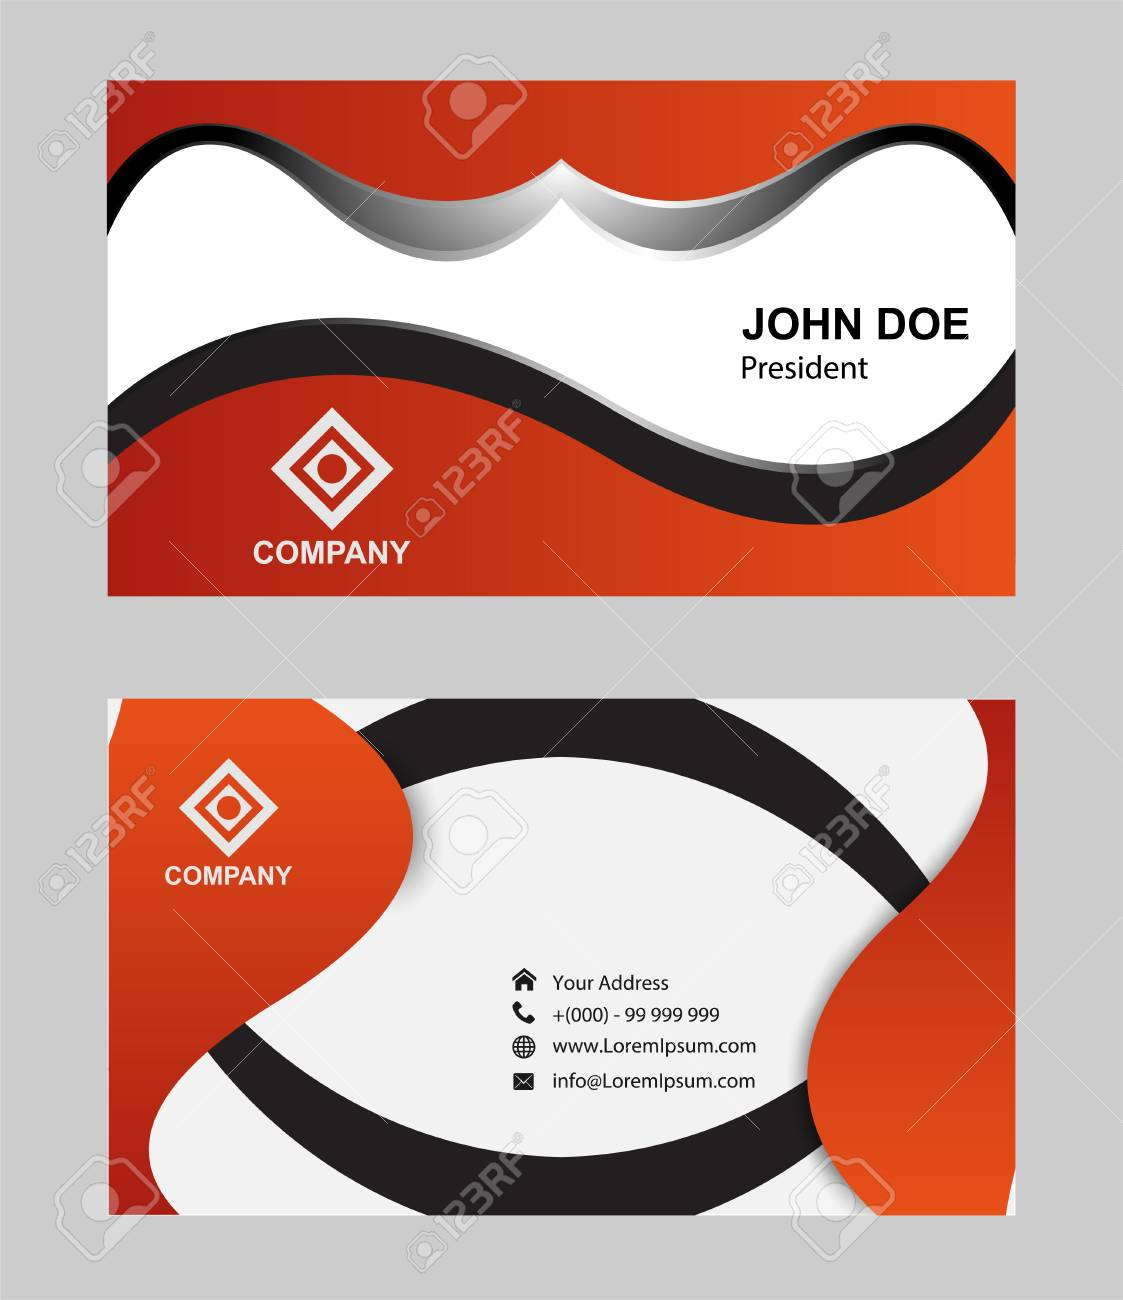 Modern simple luxury standard business card design with sharp modern simple luxury standard business card design with sharp corners stock vector 56238501 reheart Images